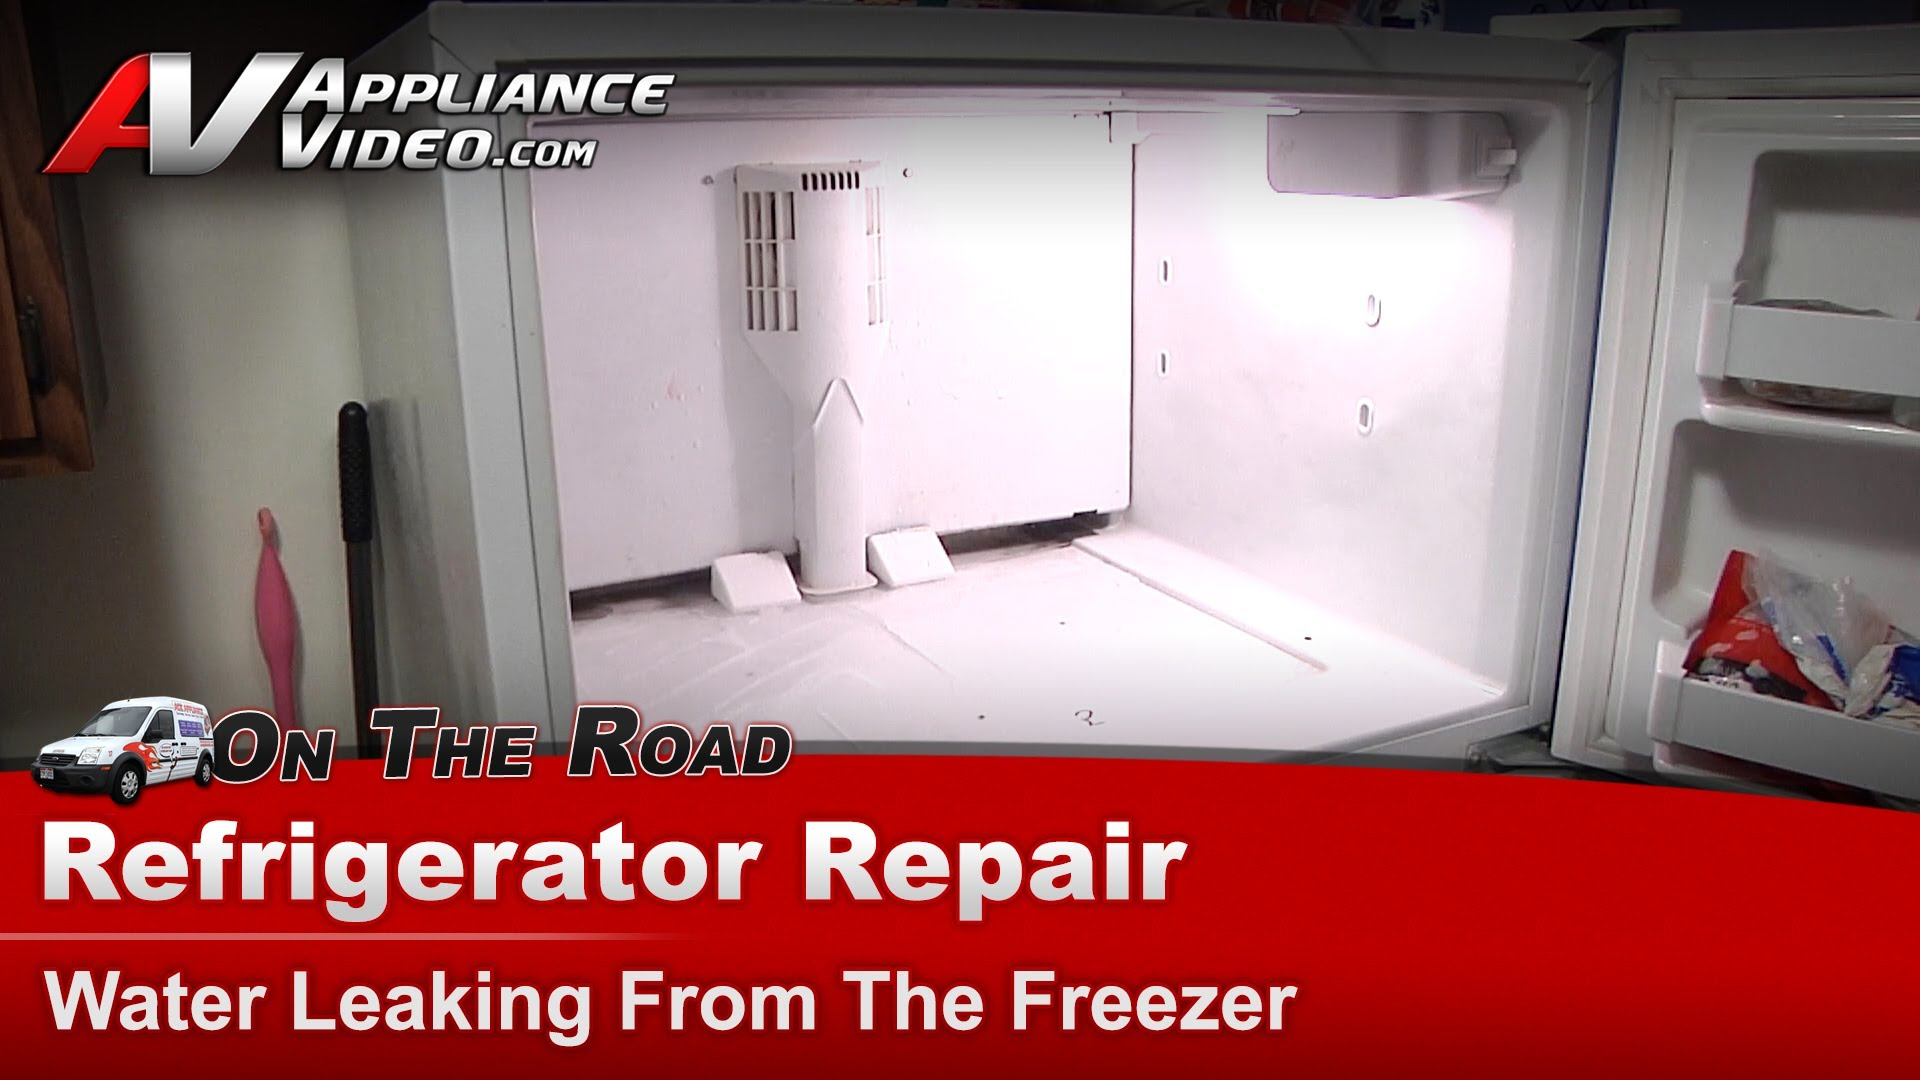 Kenmore Refrigerator Repair >> Kenmore 10677292790 Refrigerator Repair – Water leaking from the freezer – Evaporator Drain Pan ...